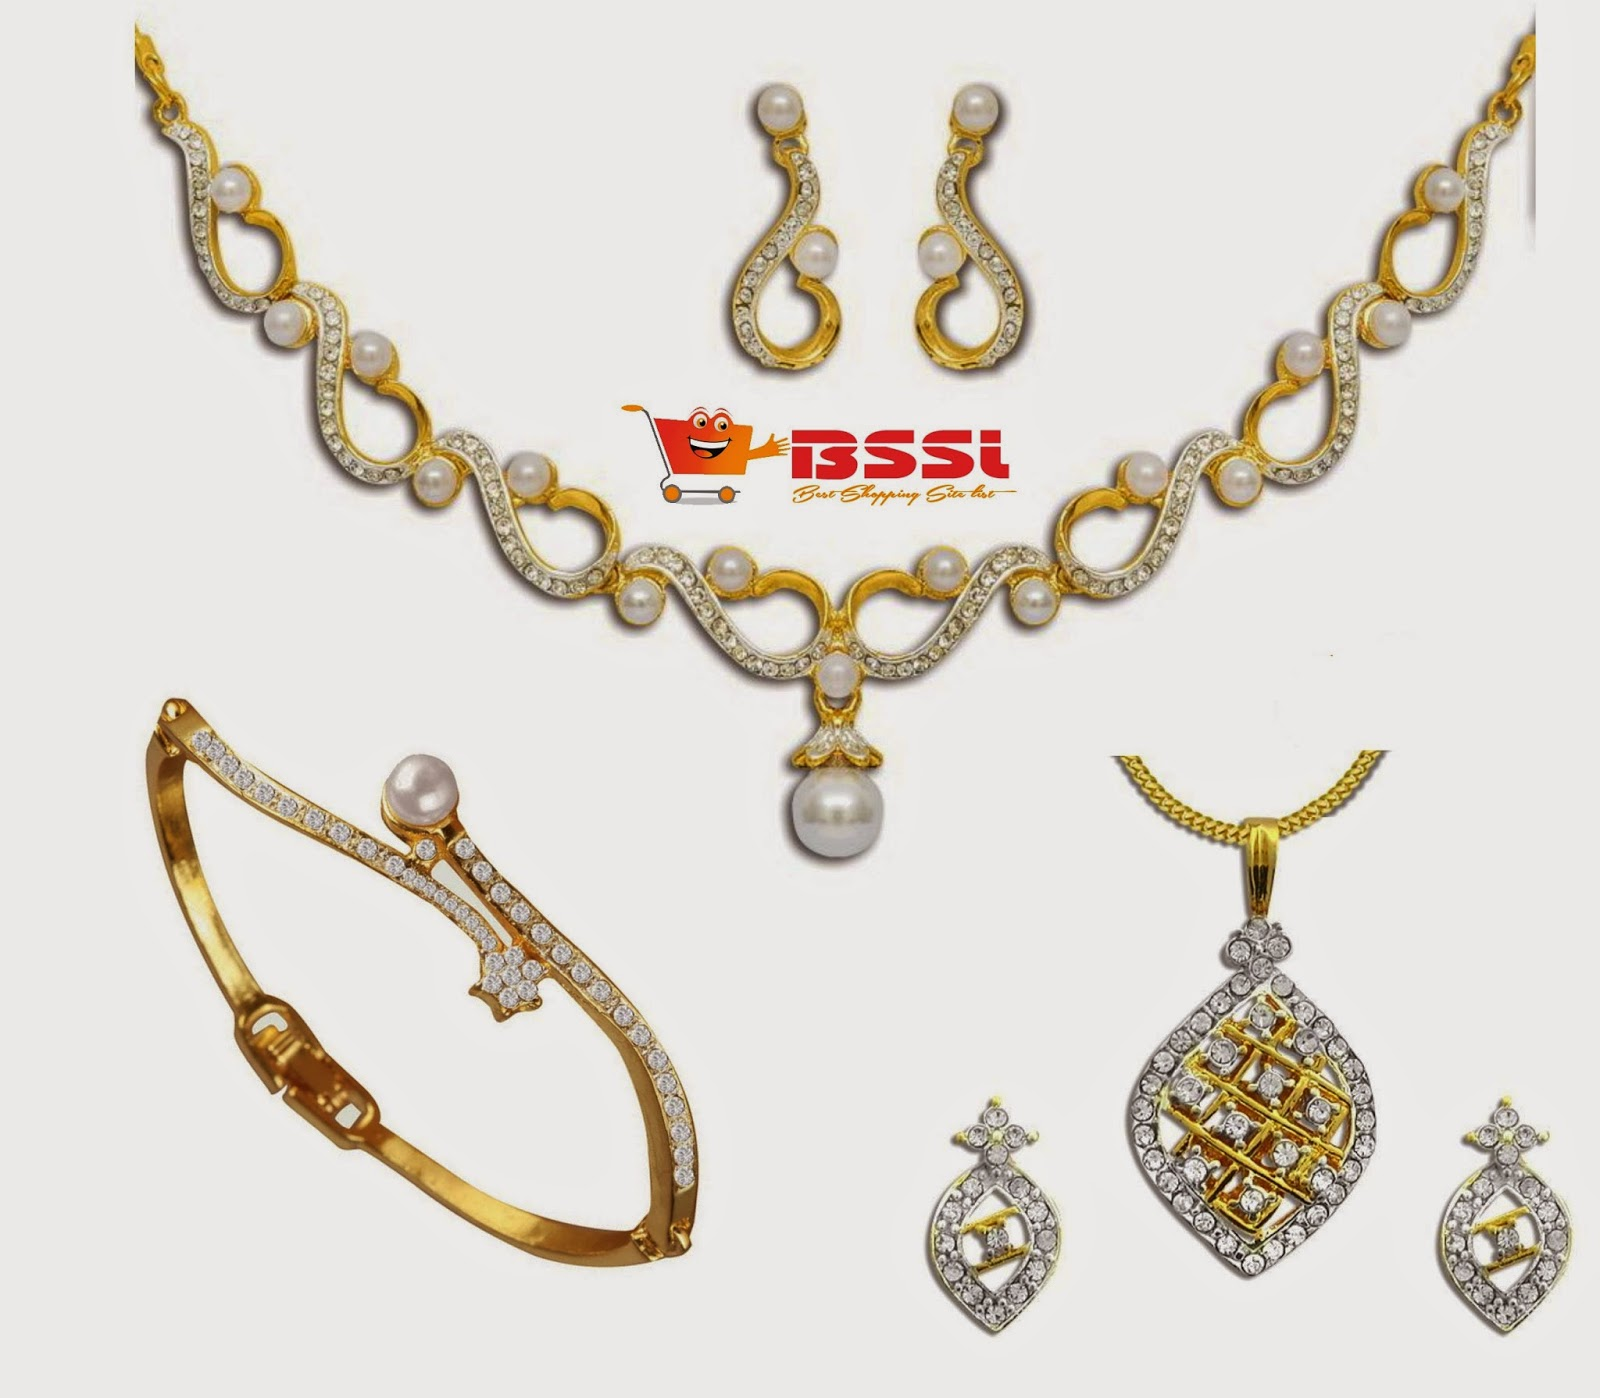 silver best quality sites websites jewel cheap jewellery grande fashion for online bracelets shopping pr jewelry blogs